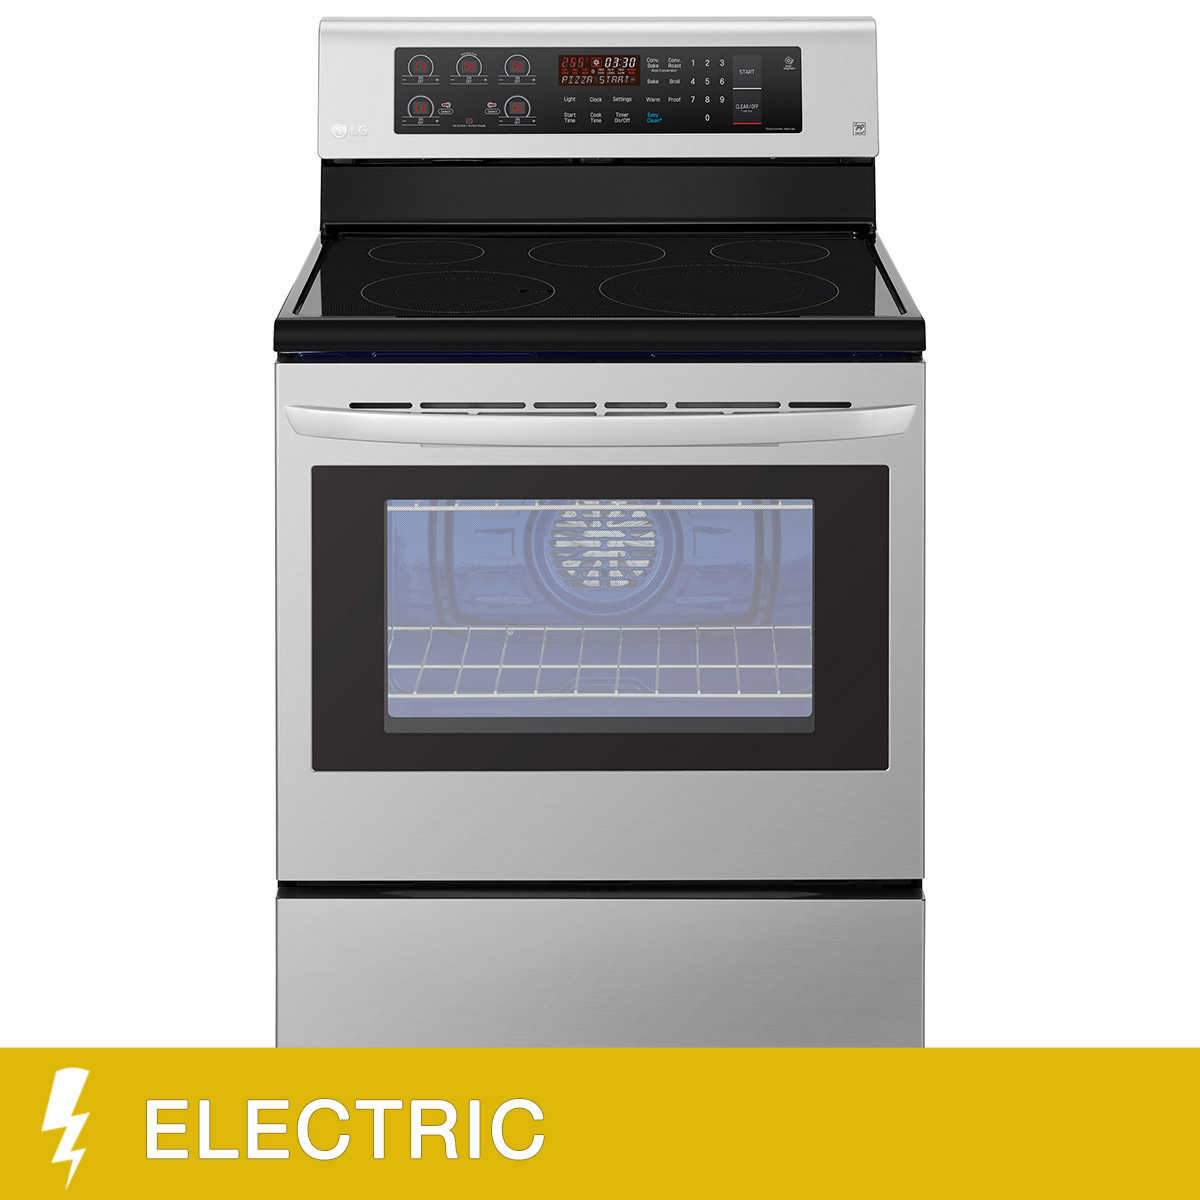 Uncategorized Kitchen Appliances Montreal appliances offers costco lg 30 in stainless steel freestanding electric range with true convection